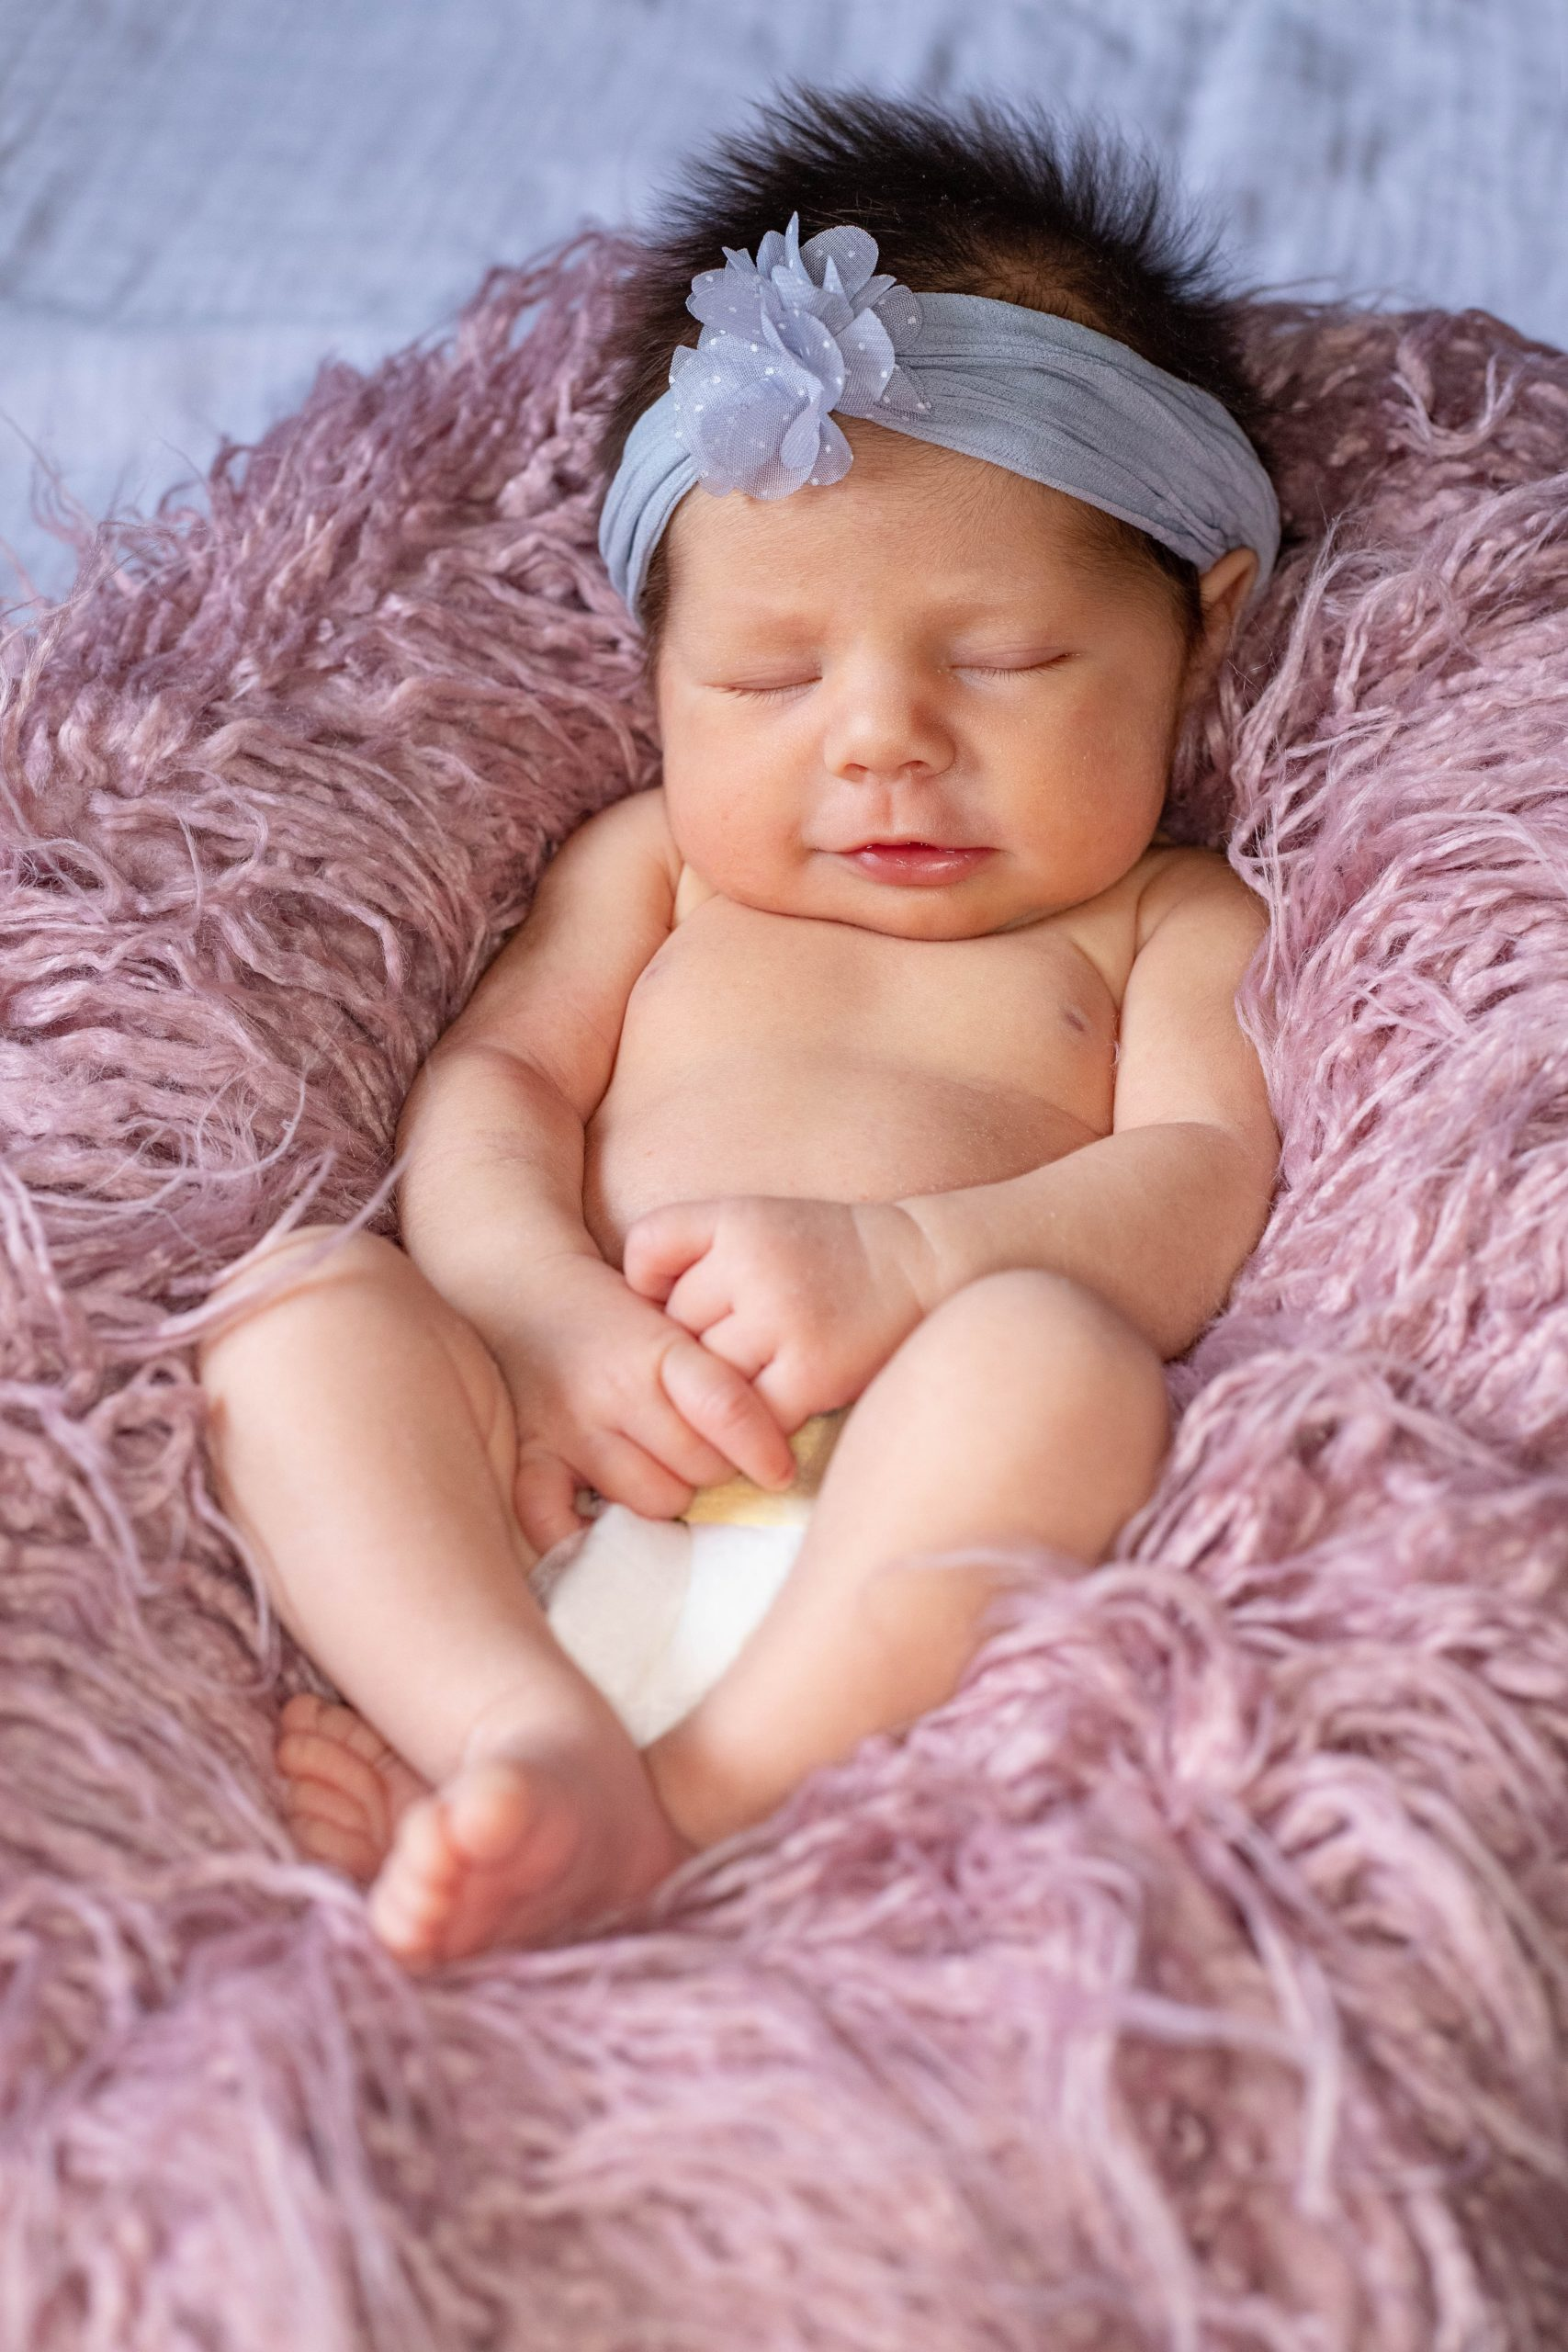 Newborn Baby Care After Birth - How You Can Help Your Baby